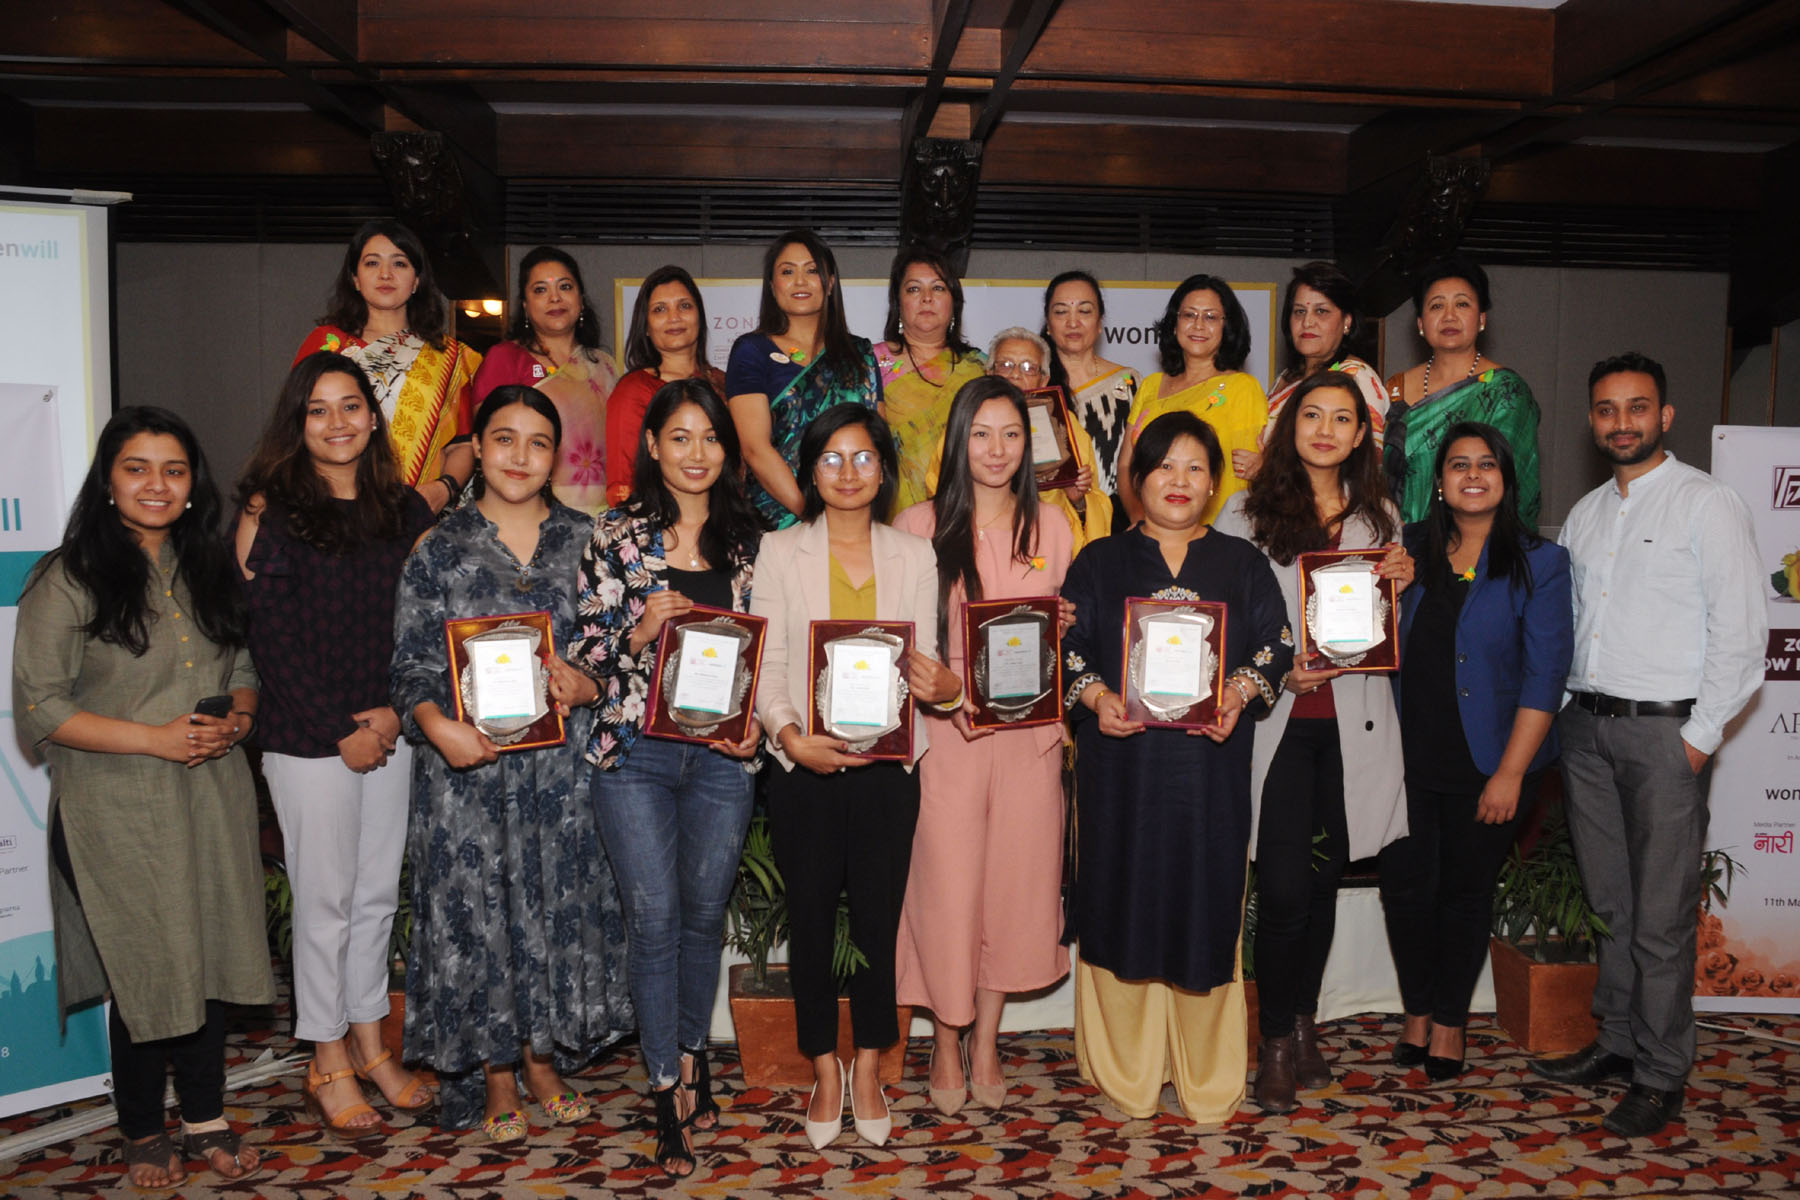 Seven inspiring women honored on Yellow Rose Day and WomenWill Fest 2018